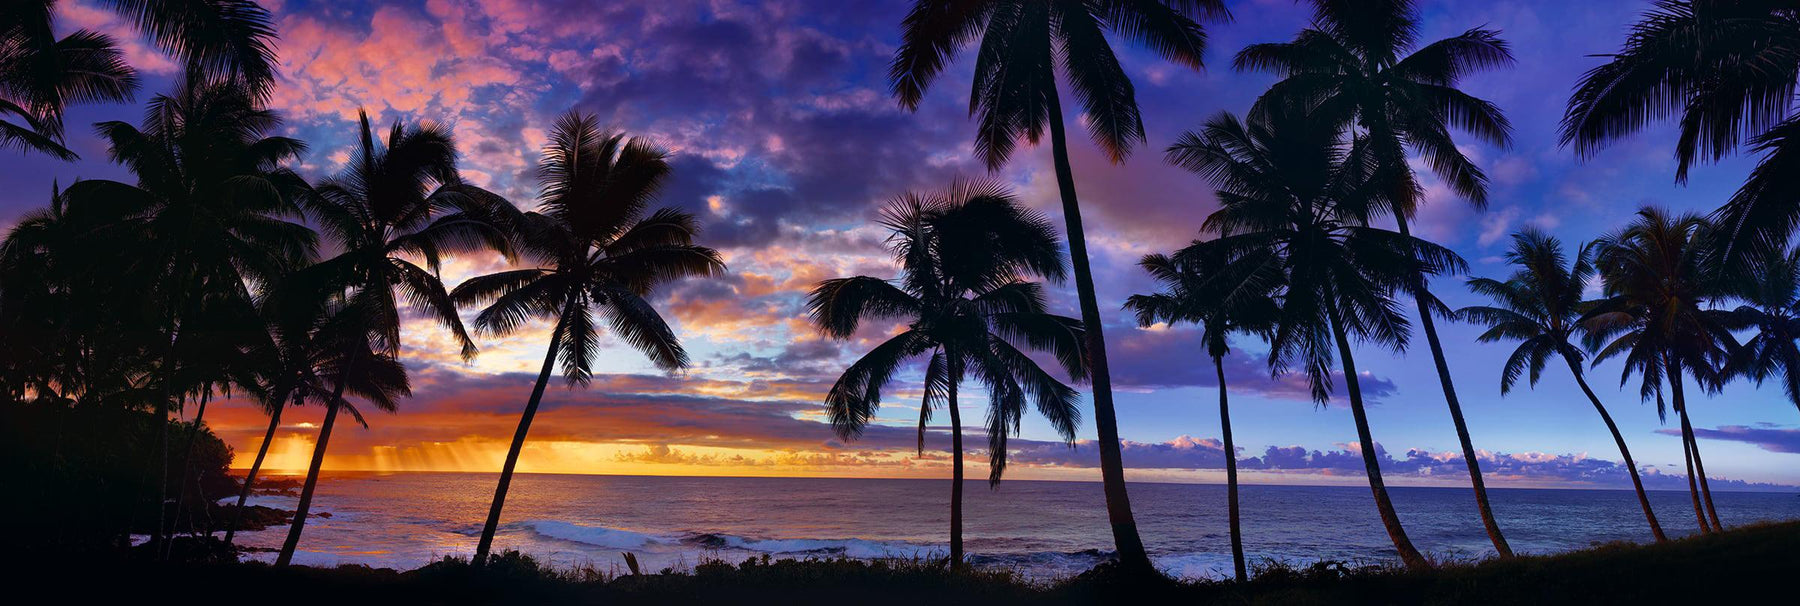 Palm tree silhouettes on a beach in Kapoho Hawaii with the sun rising through the clouds in the distance